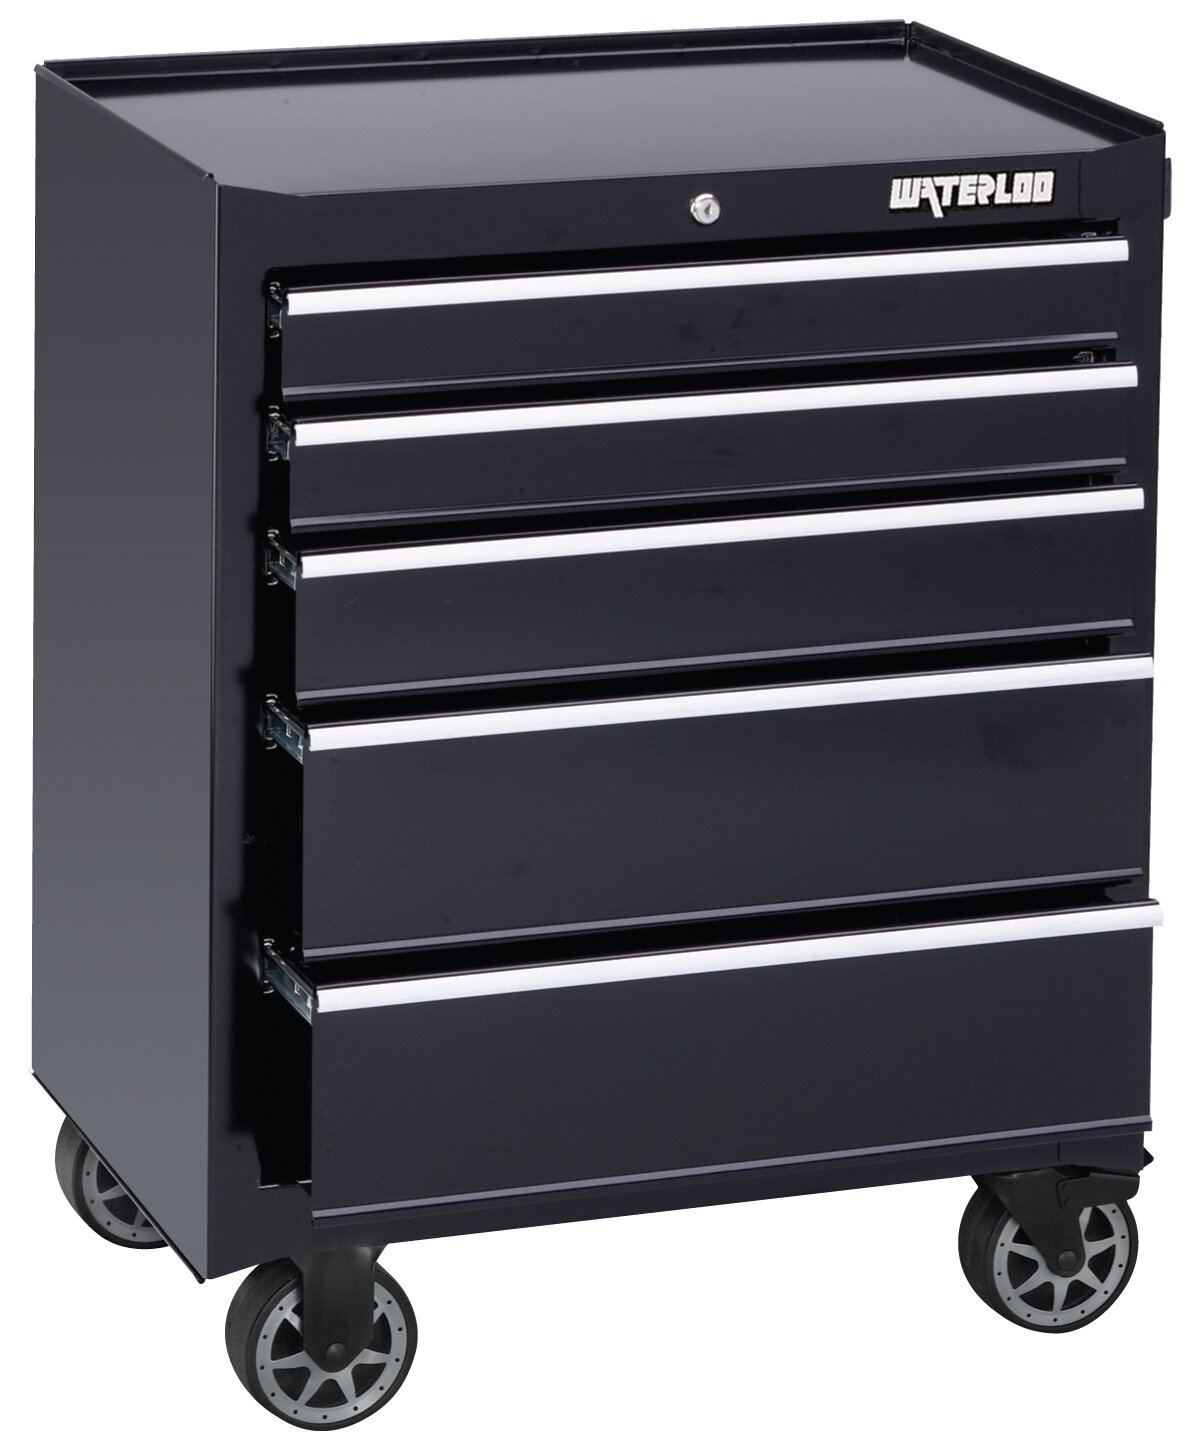 Stupendous Waterloo Series 26W 5 Drawer Tool Chest Machost Co Dining Chair Design Ideas Machostcouk